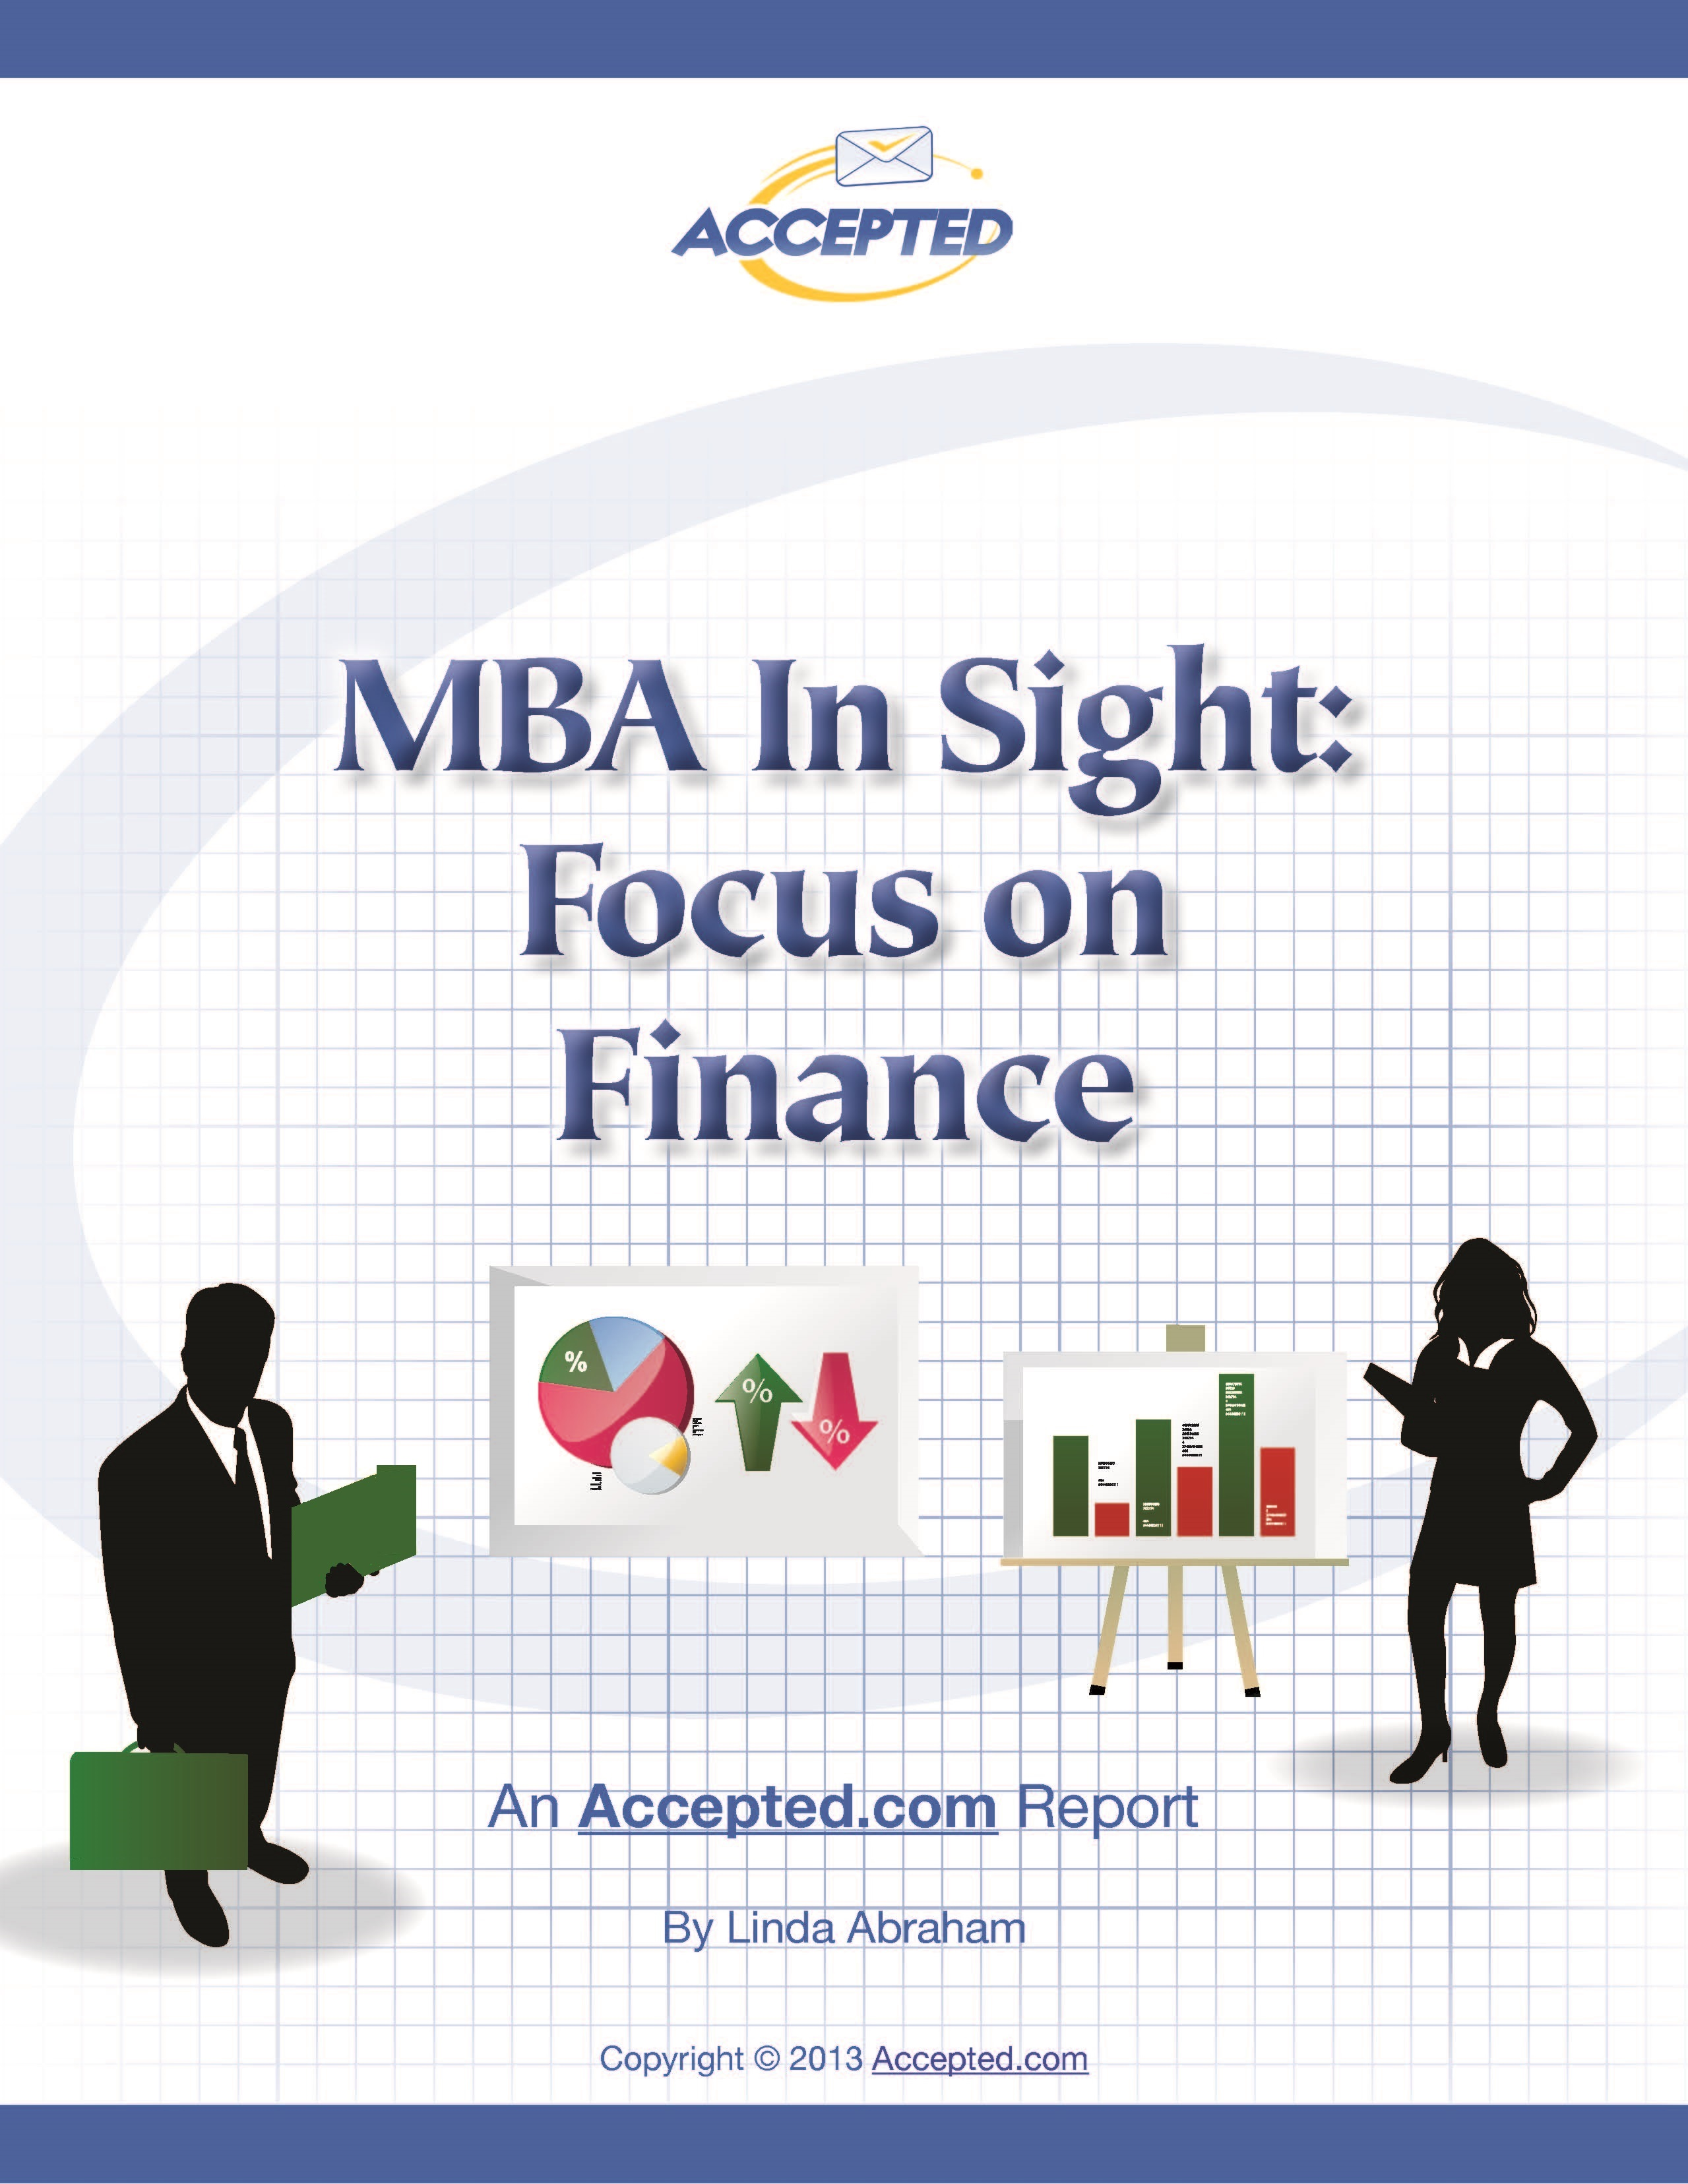 doctoral thesis corporate finance Fifteen strong topics for an mba dissertation in finance to prepare your mba dissertations in finance, prioritize the extensive book reading and internet research to have relevant topics in this connection.